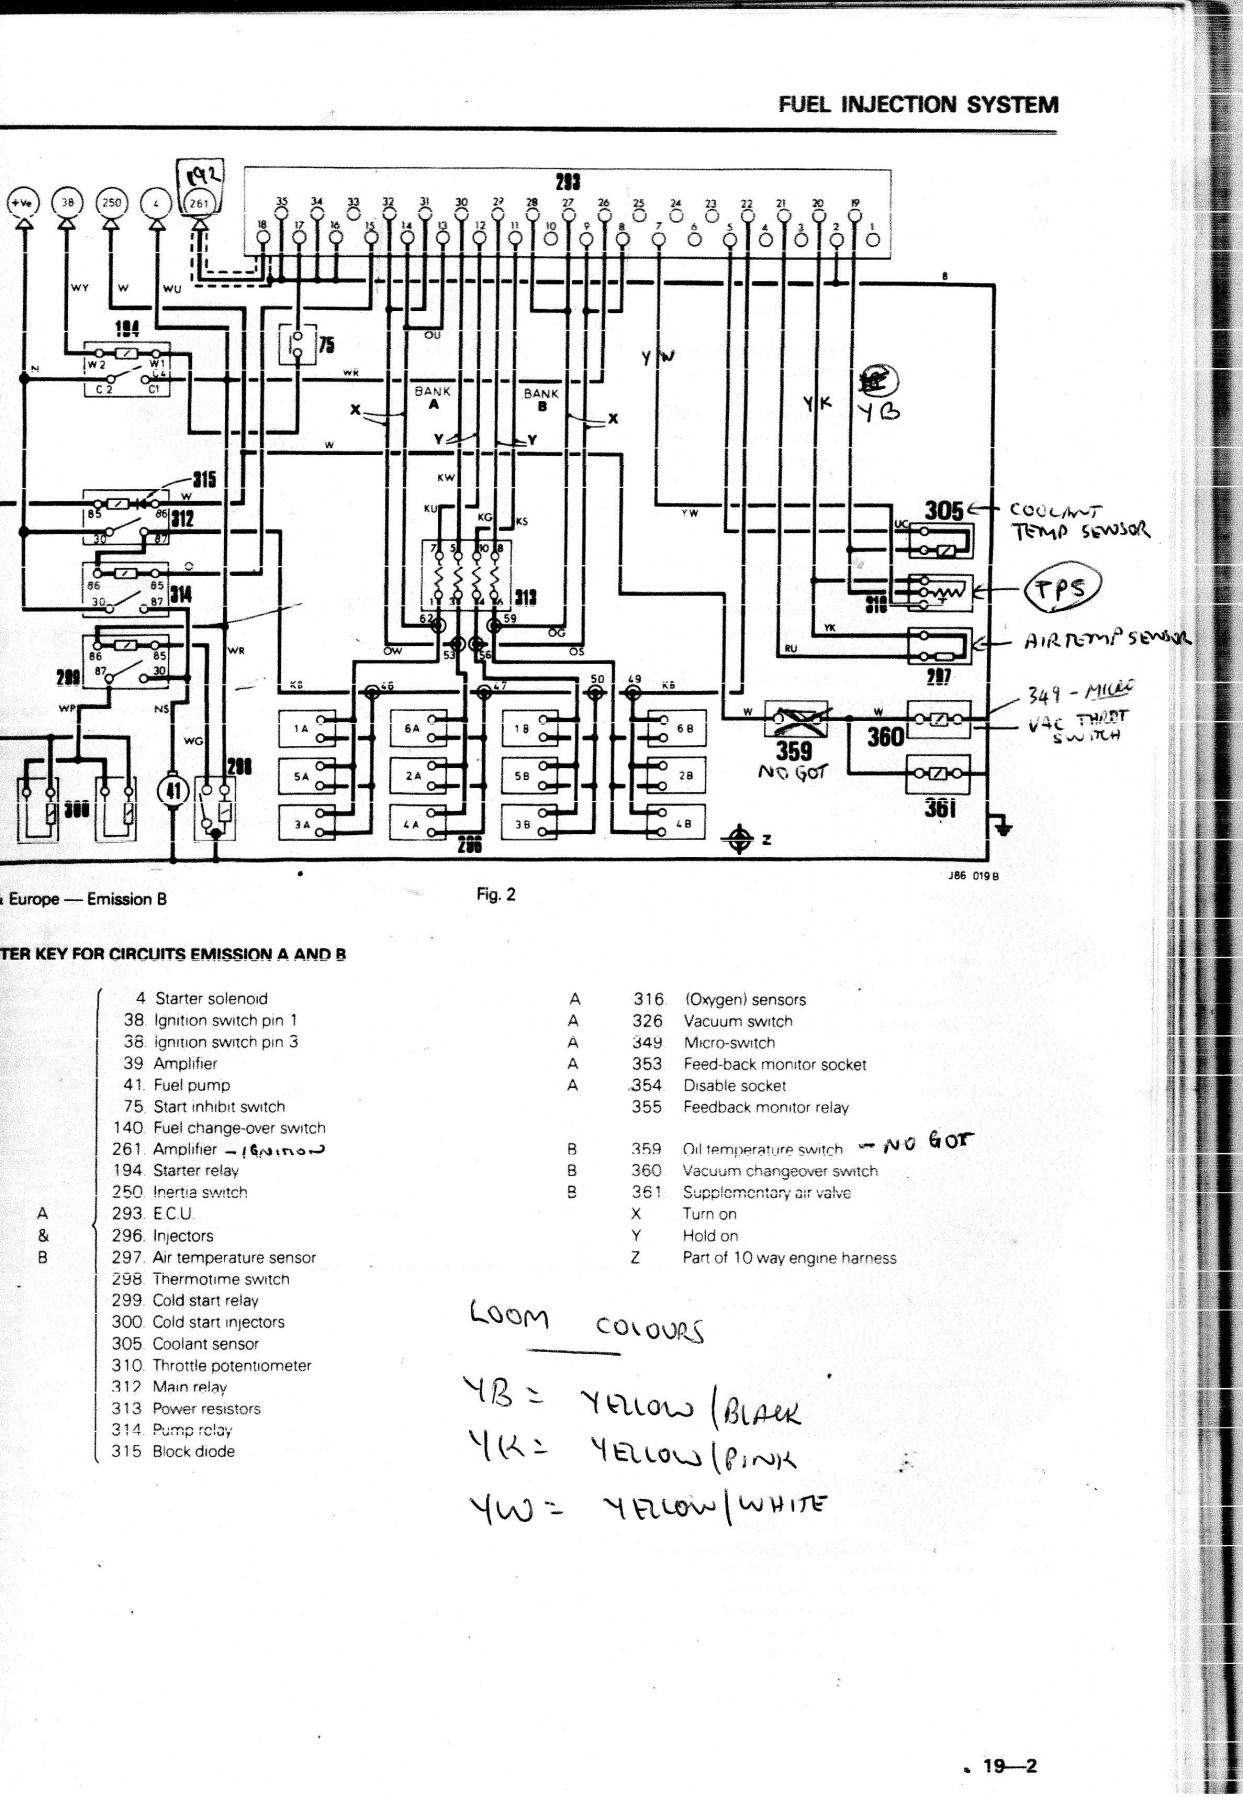 2000 Jaguar S Type Fuse Box Diagram Wiring Harness In Addition Jaguar